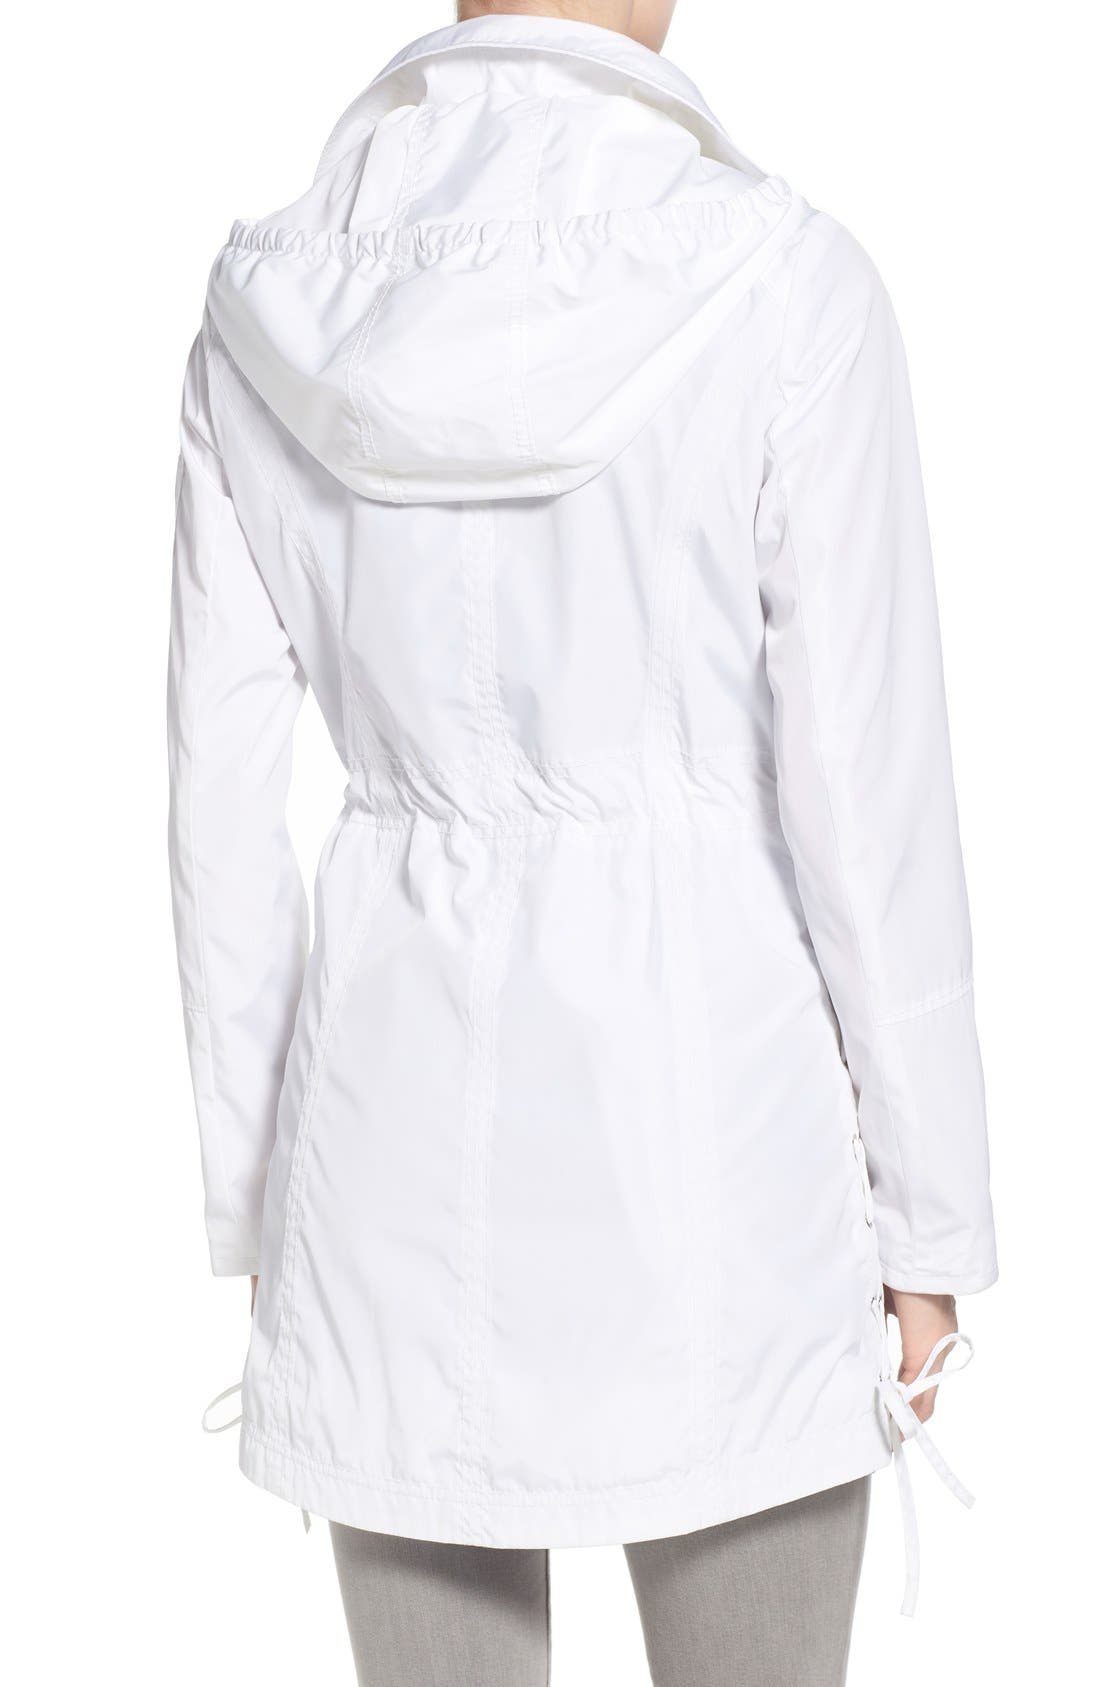 Windbreaker with Lace-Up Sides,                             Alternate thumbnail 2, color,                             White